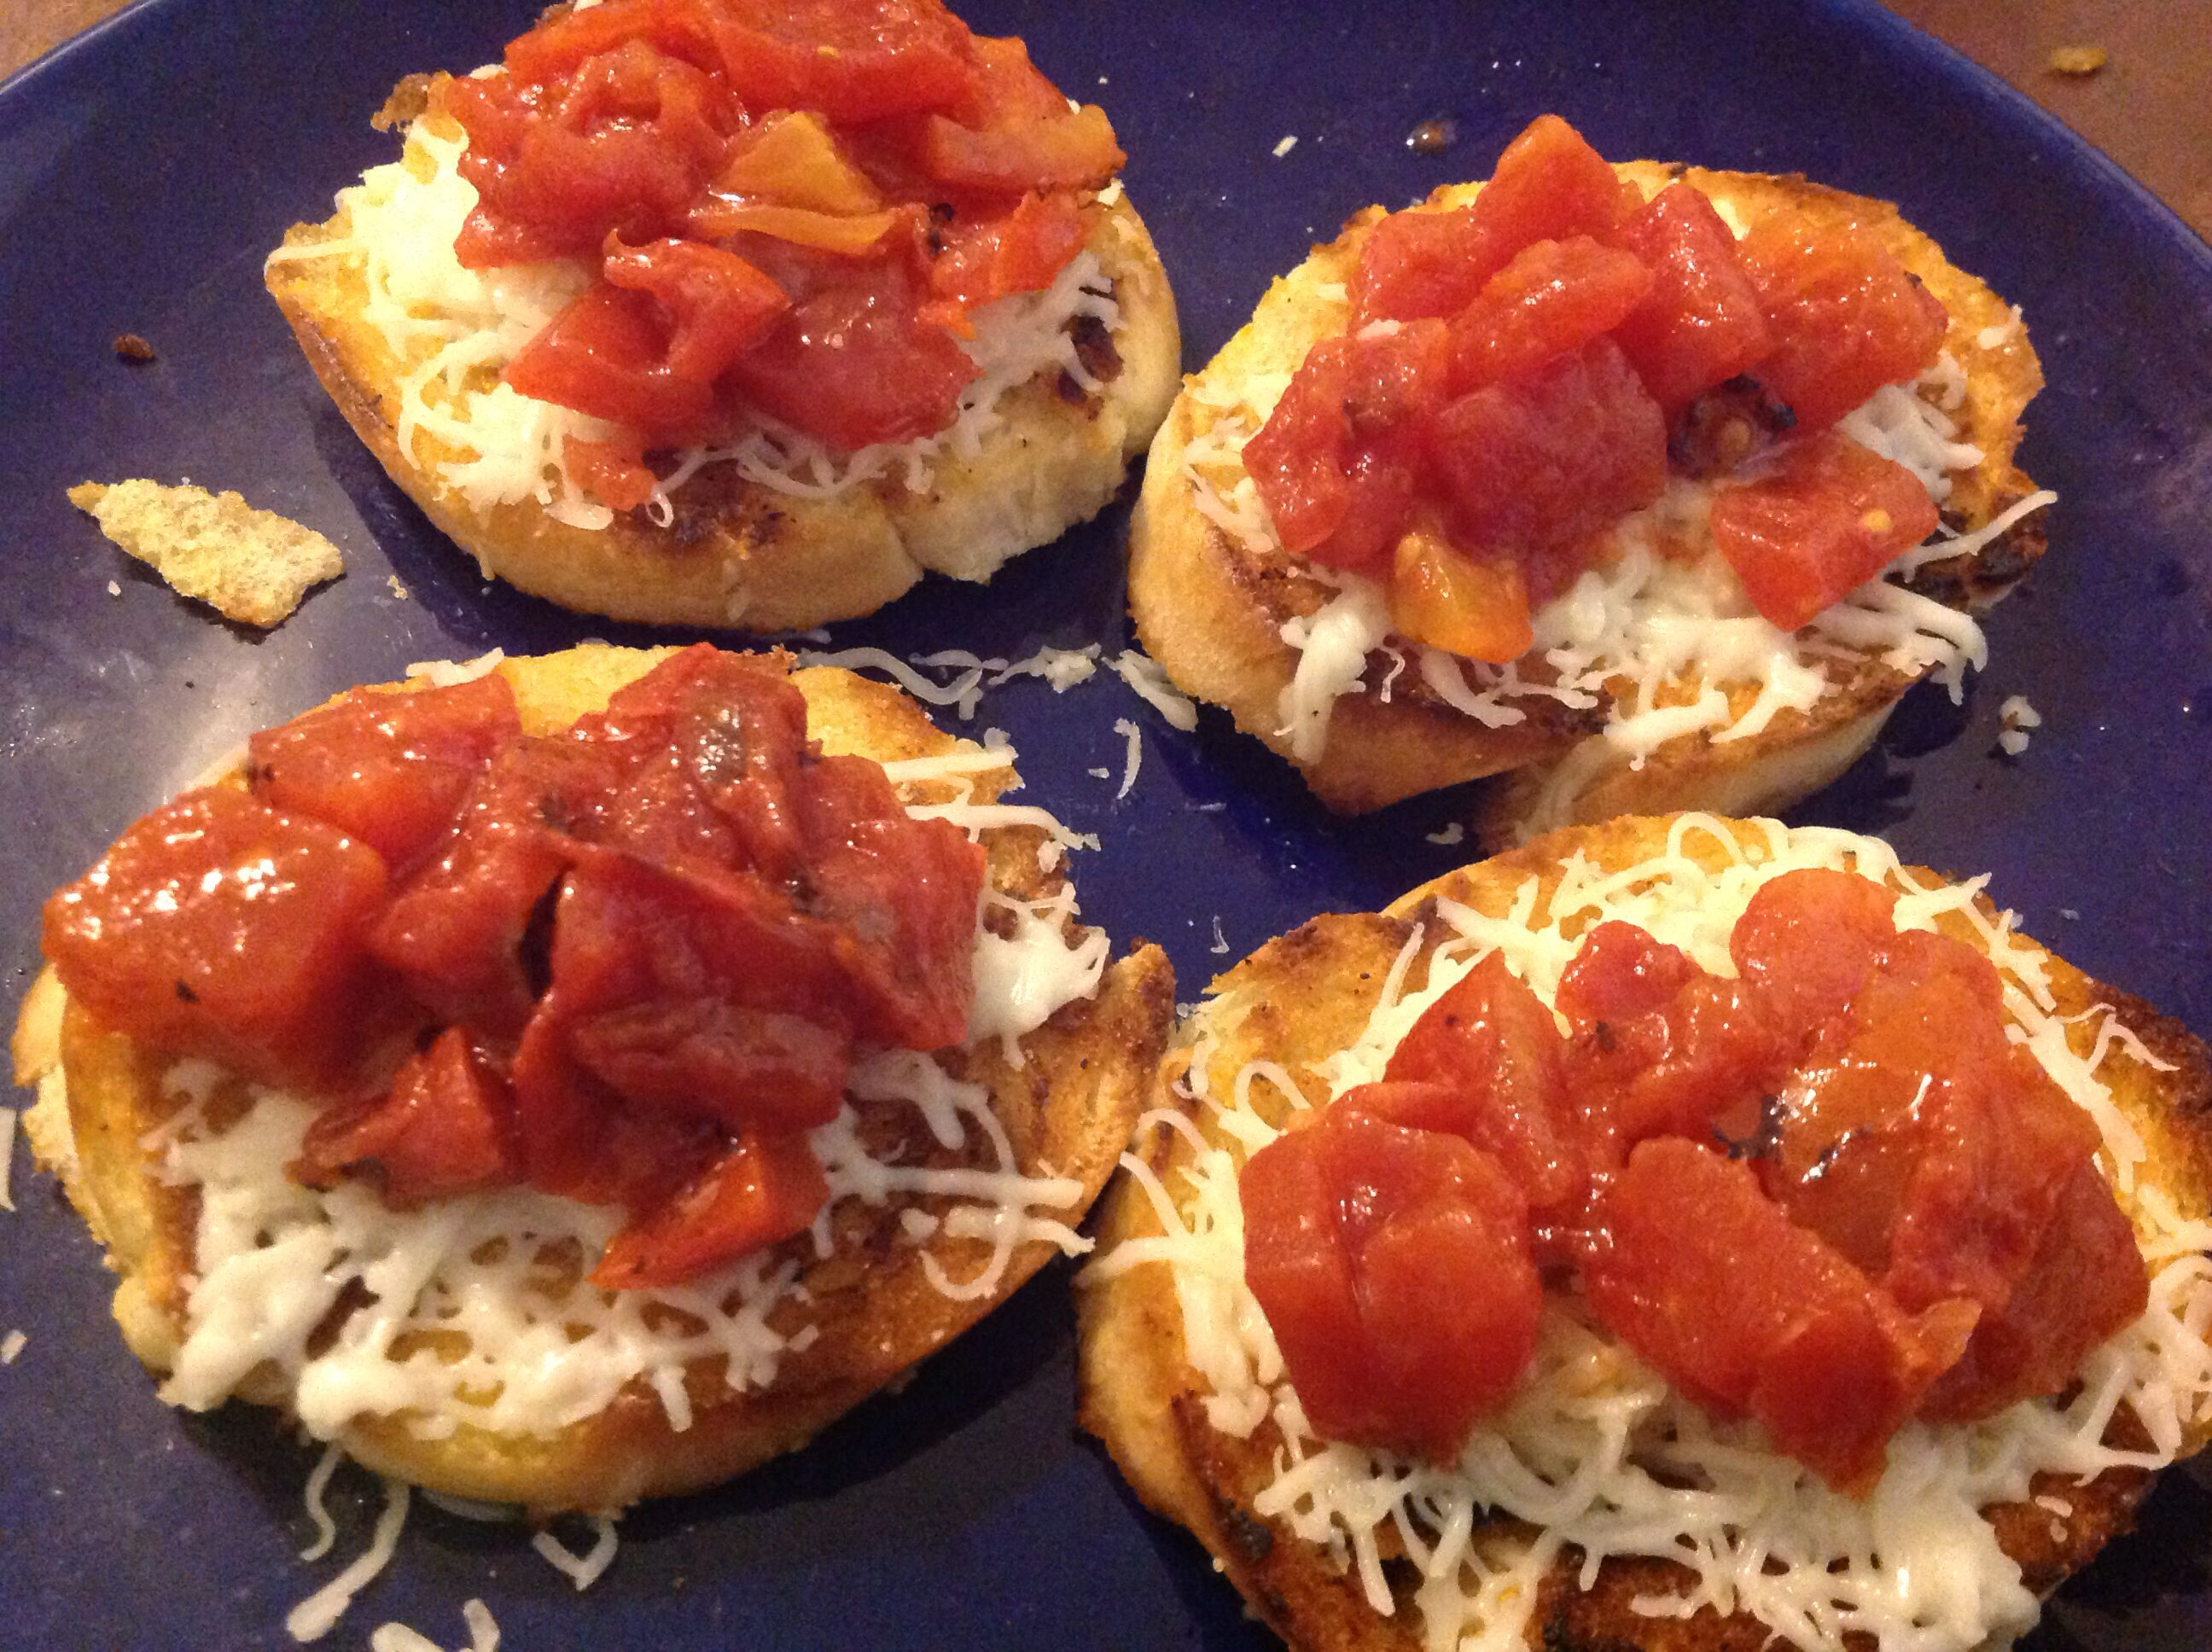 Bruschetta and mozzarella cheese with fire roasted tomatoes. Again I could only find western family cheese. Best if you use fresh maze really and fresh diced tomatoes. Fresh is always better!